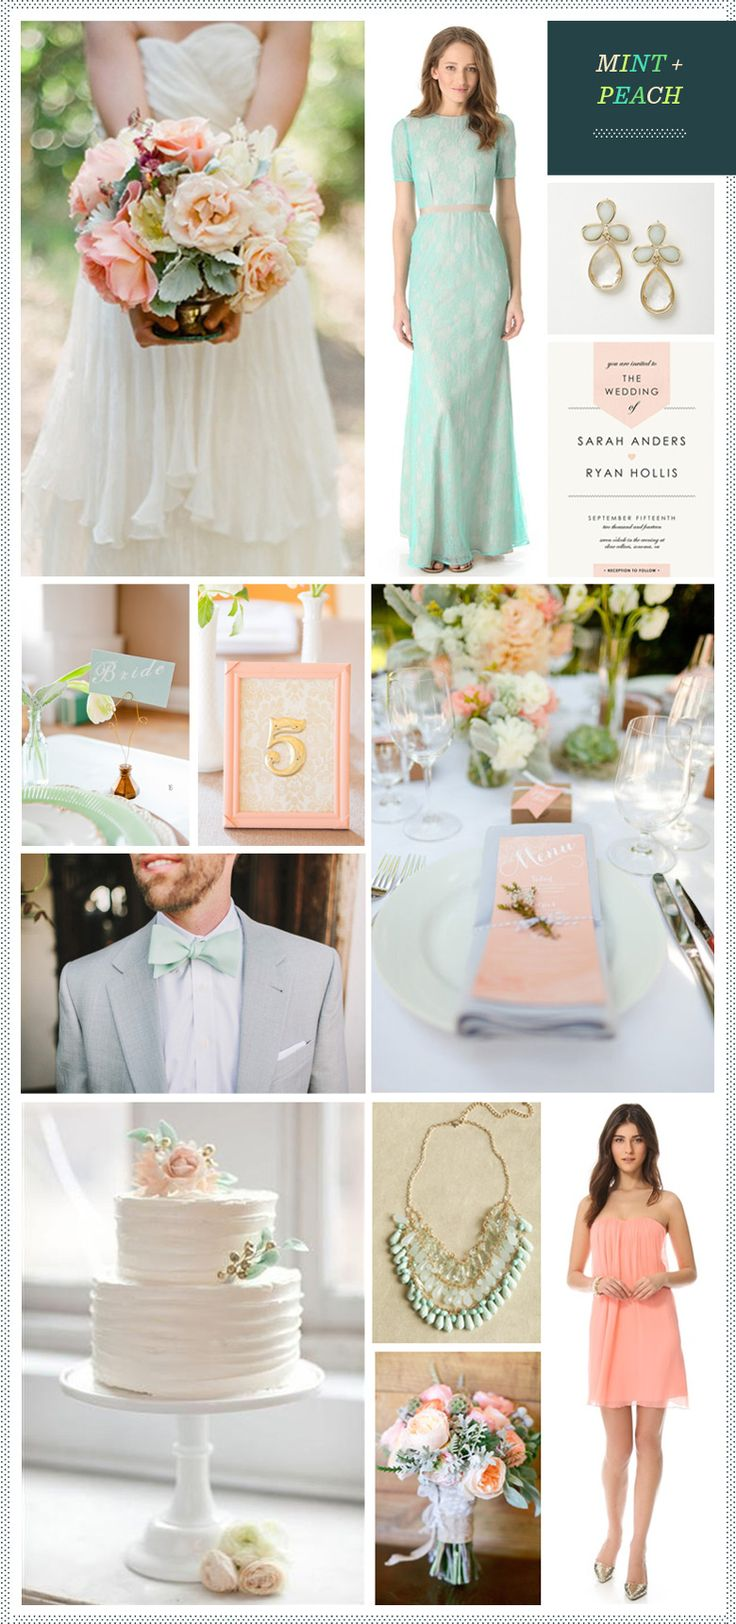 Mint + Peach Wedding Inspiration. The top right dress is pretty but the others I dislike.